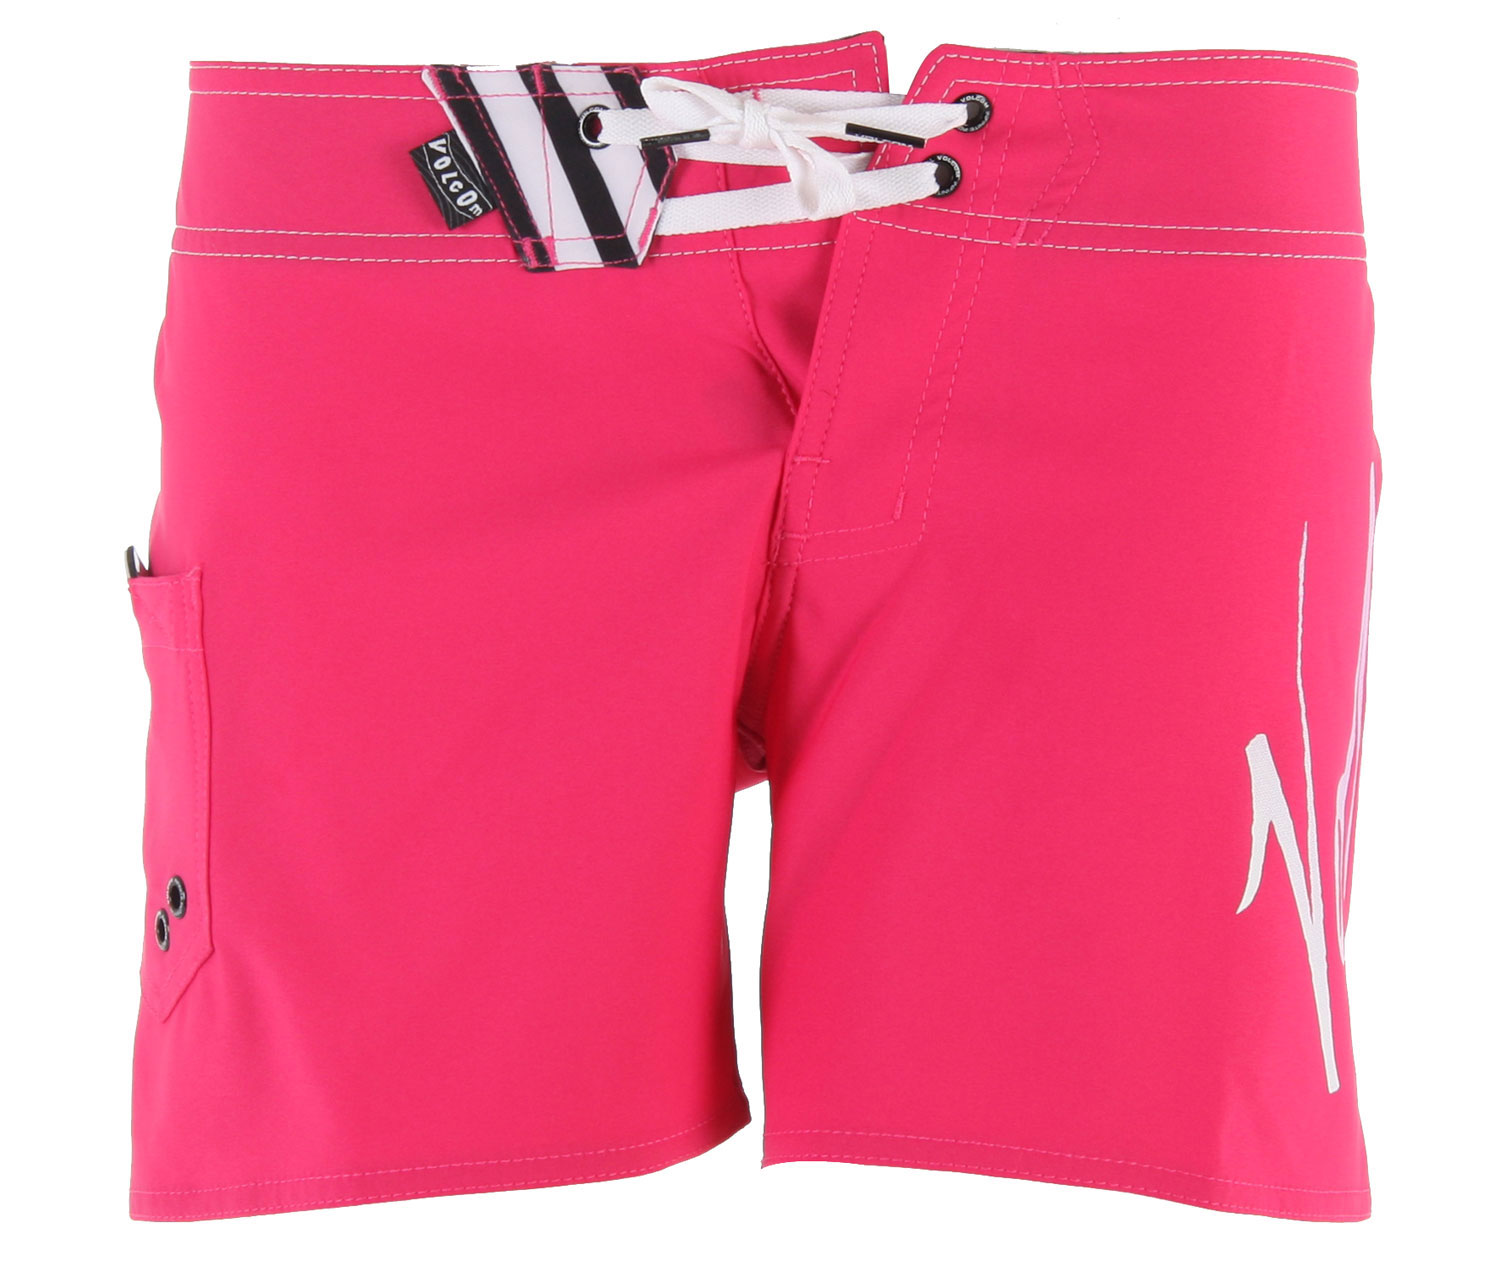 "Fitness Hey ladies, lets kick the summer with the perfect outfit. The Volcom Stream Lines 5"" Boardie Boardshorts is the pair of boardshorts to rock along the sand-filled beach this summer. Made with polyester and a bit of elastane, these shorts offer softness with the right amount of stretch, perfect for running around in. Wear it with your summer tank top or your favorite bikini and you're set. Stay active, stylish and super comfortable with the Volcom Stream Lines 5"" Boardie Boardshorts.Key Features of the Volcom Stream Lines 5"" Boardie Boardshorts: 85% Polyester/15% Elastane 4-Way Stretch. Solid Or Print 5"" Inseam Boardshort Comes In 4-Way Stretch. Volcom Print Or Embroidery At Wearer's Left Leg. No Outseam And Cinch Fly Technology. - $28.95"